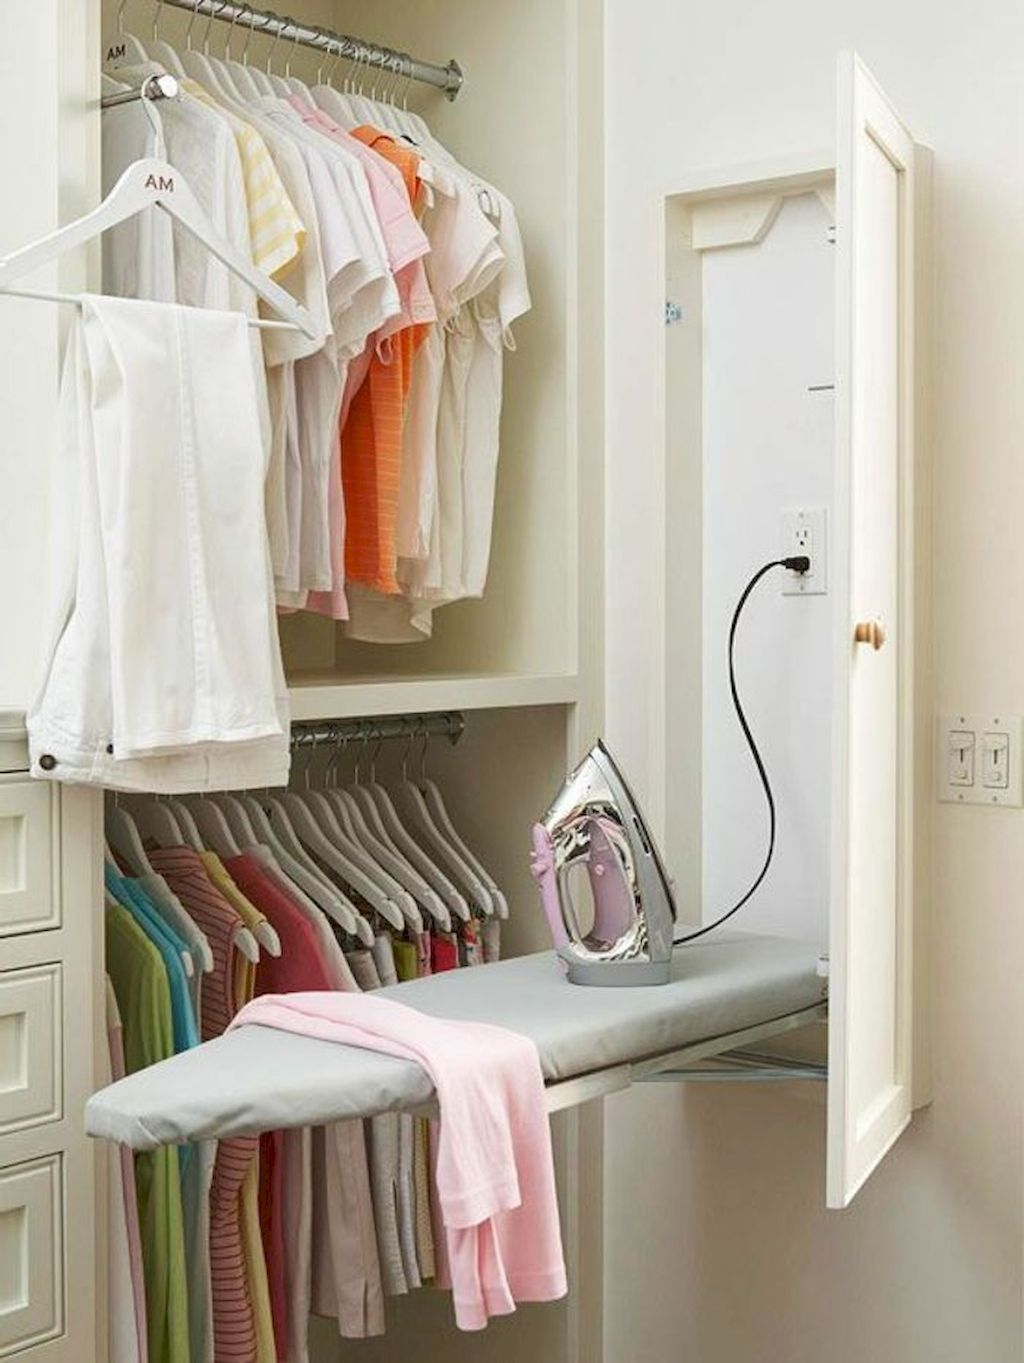 80 DIY Laundry Room Storage Shelves Ideas images